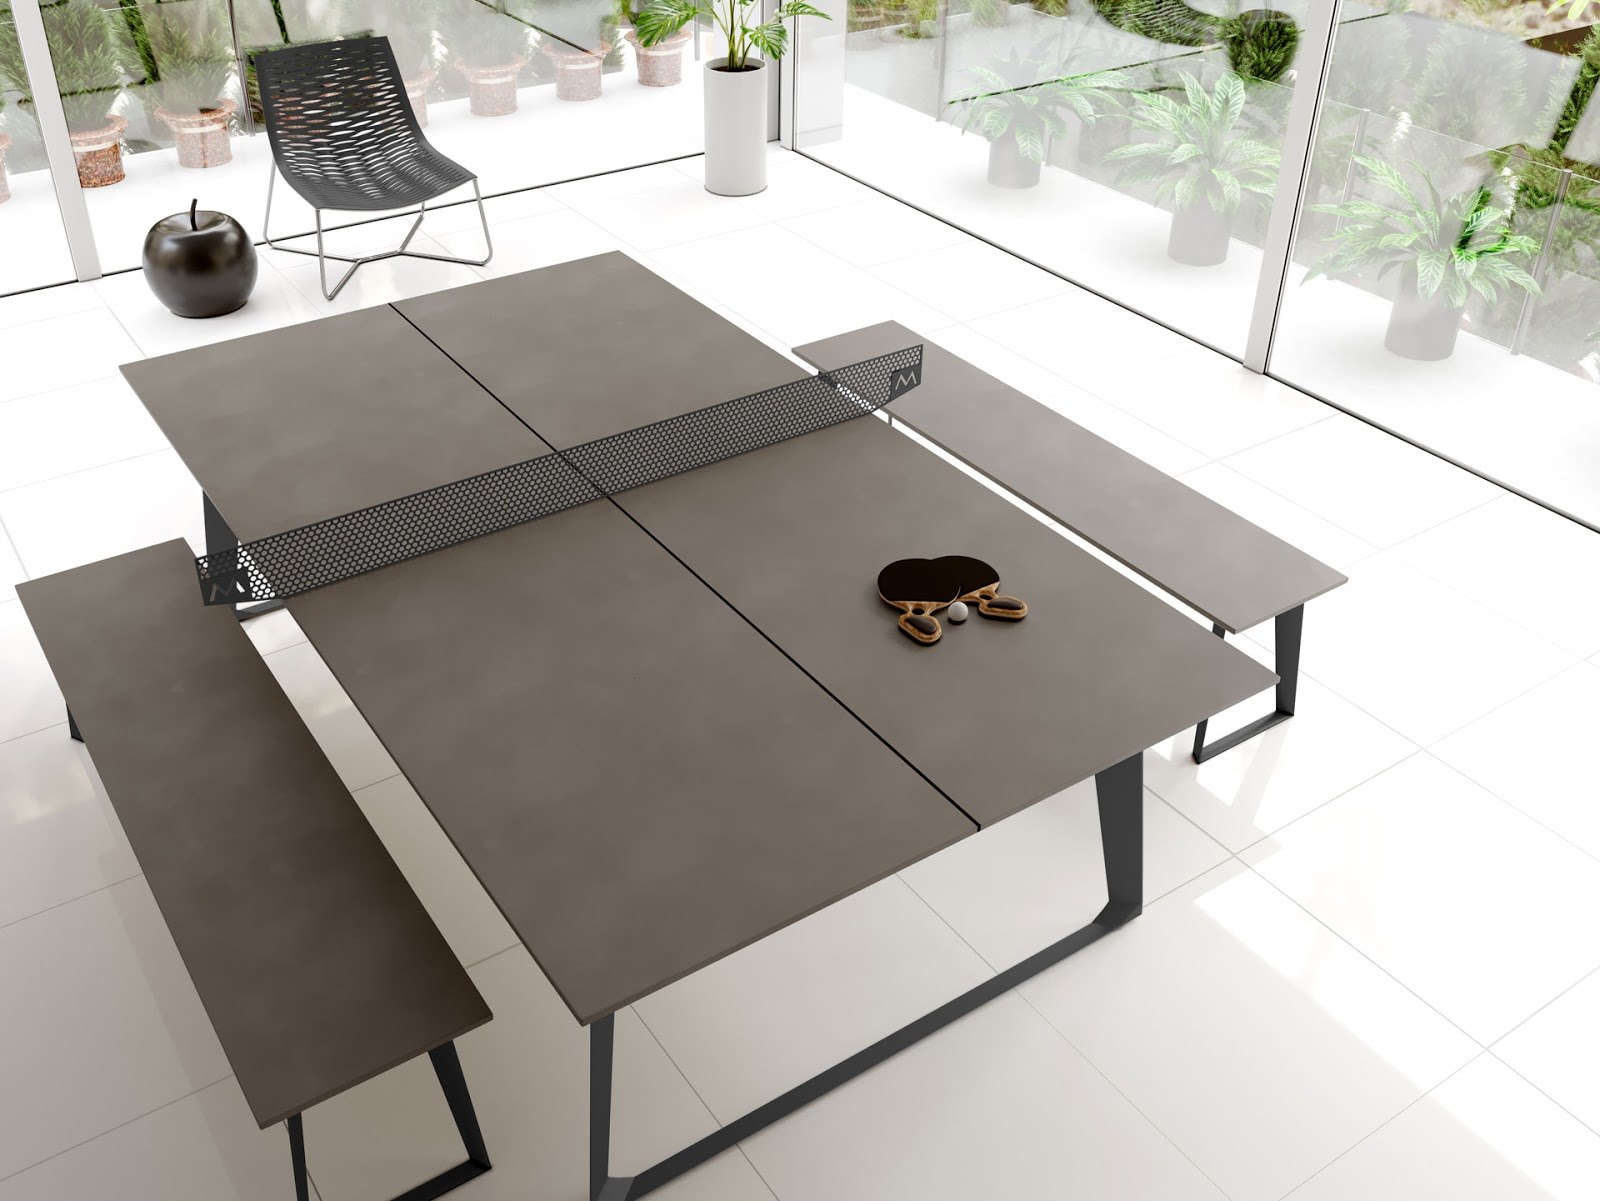 Ping pong table (credit to https://modloft.com/store/Game-Tables/Amsterdam-Ping-Pong-Table)